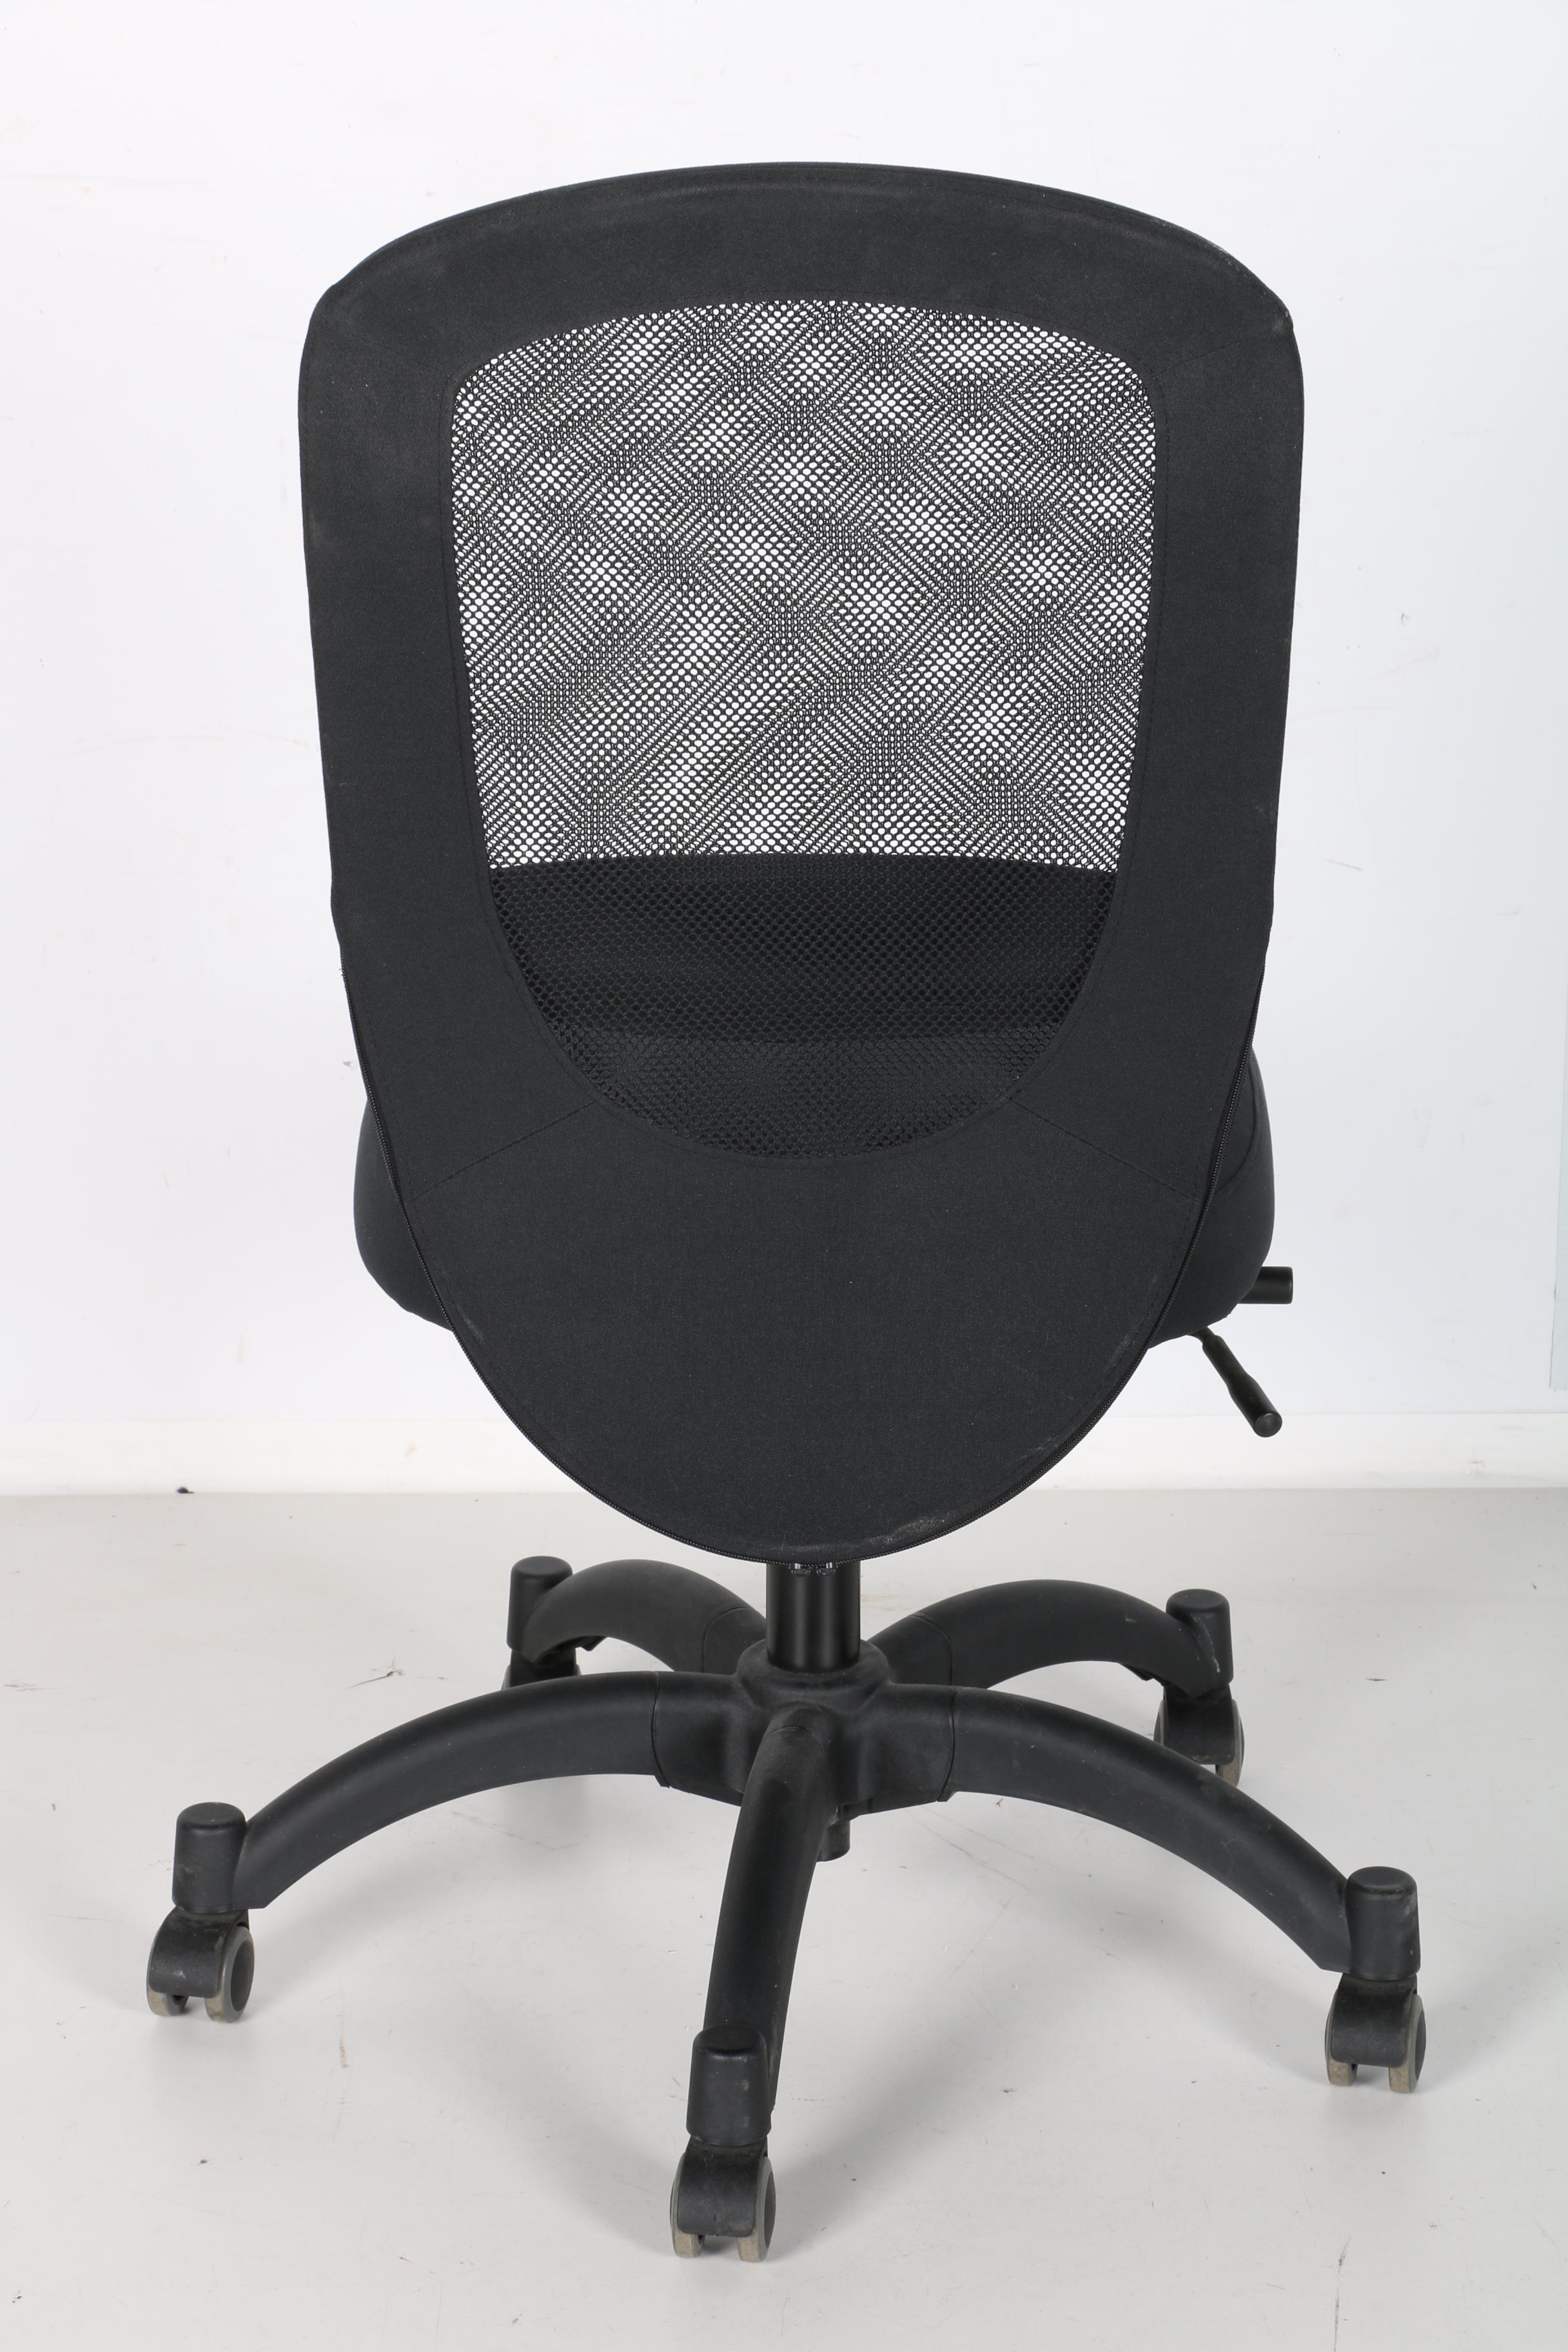 ikea rolling chair ford explorer captains chairs contemporary quotvilgot quot office by ebth